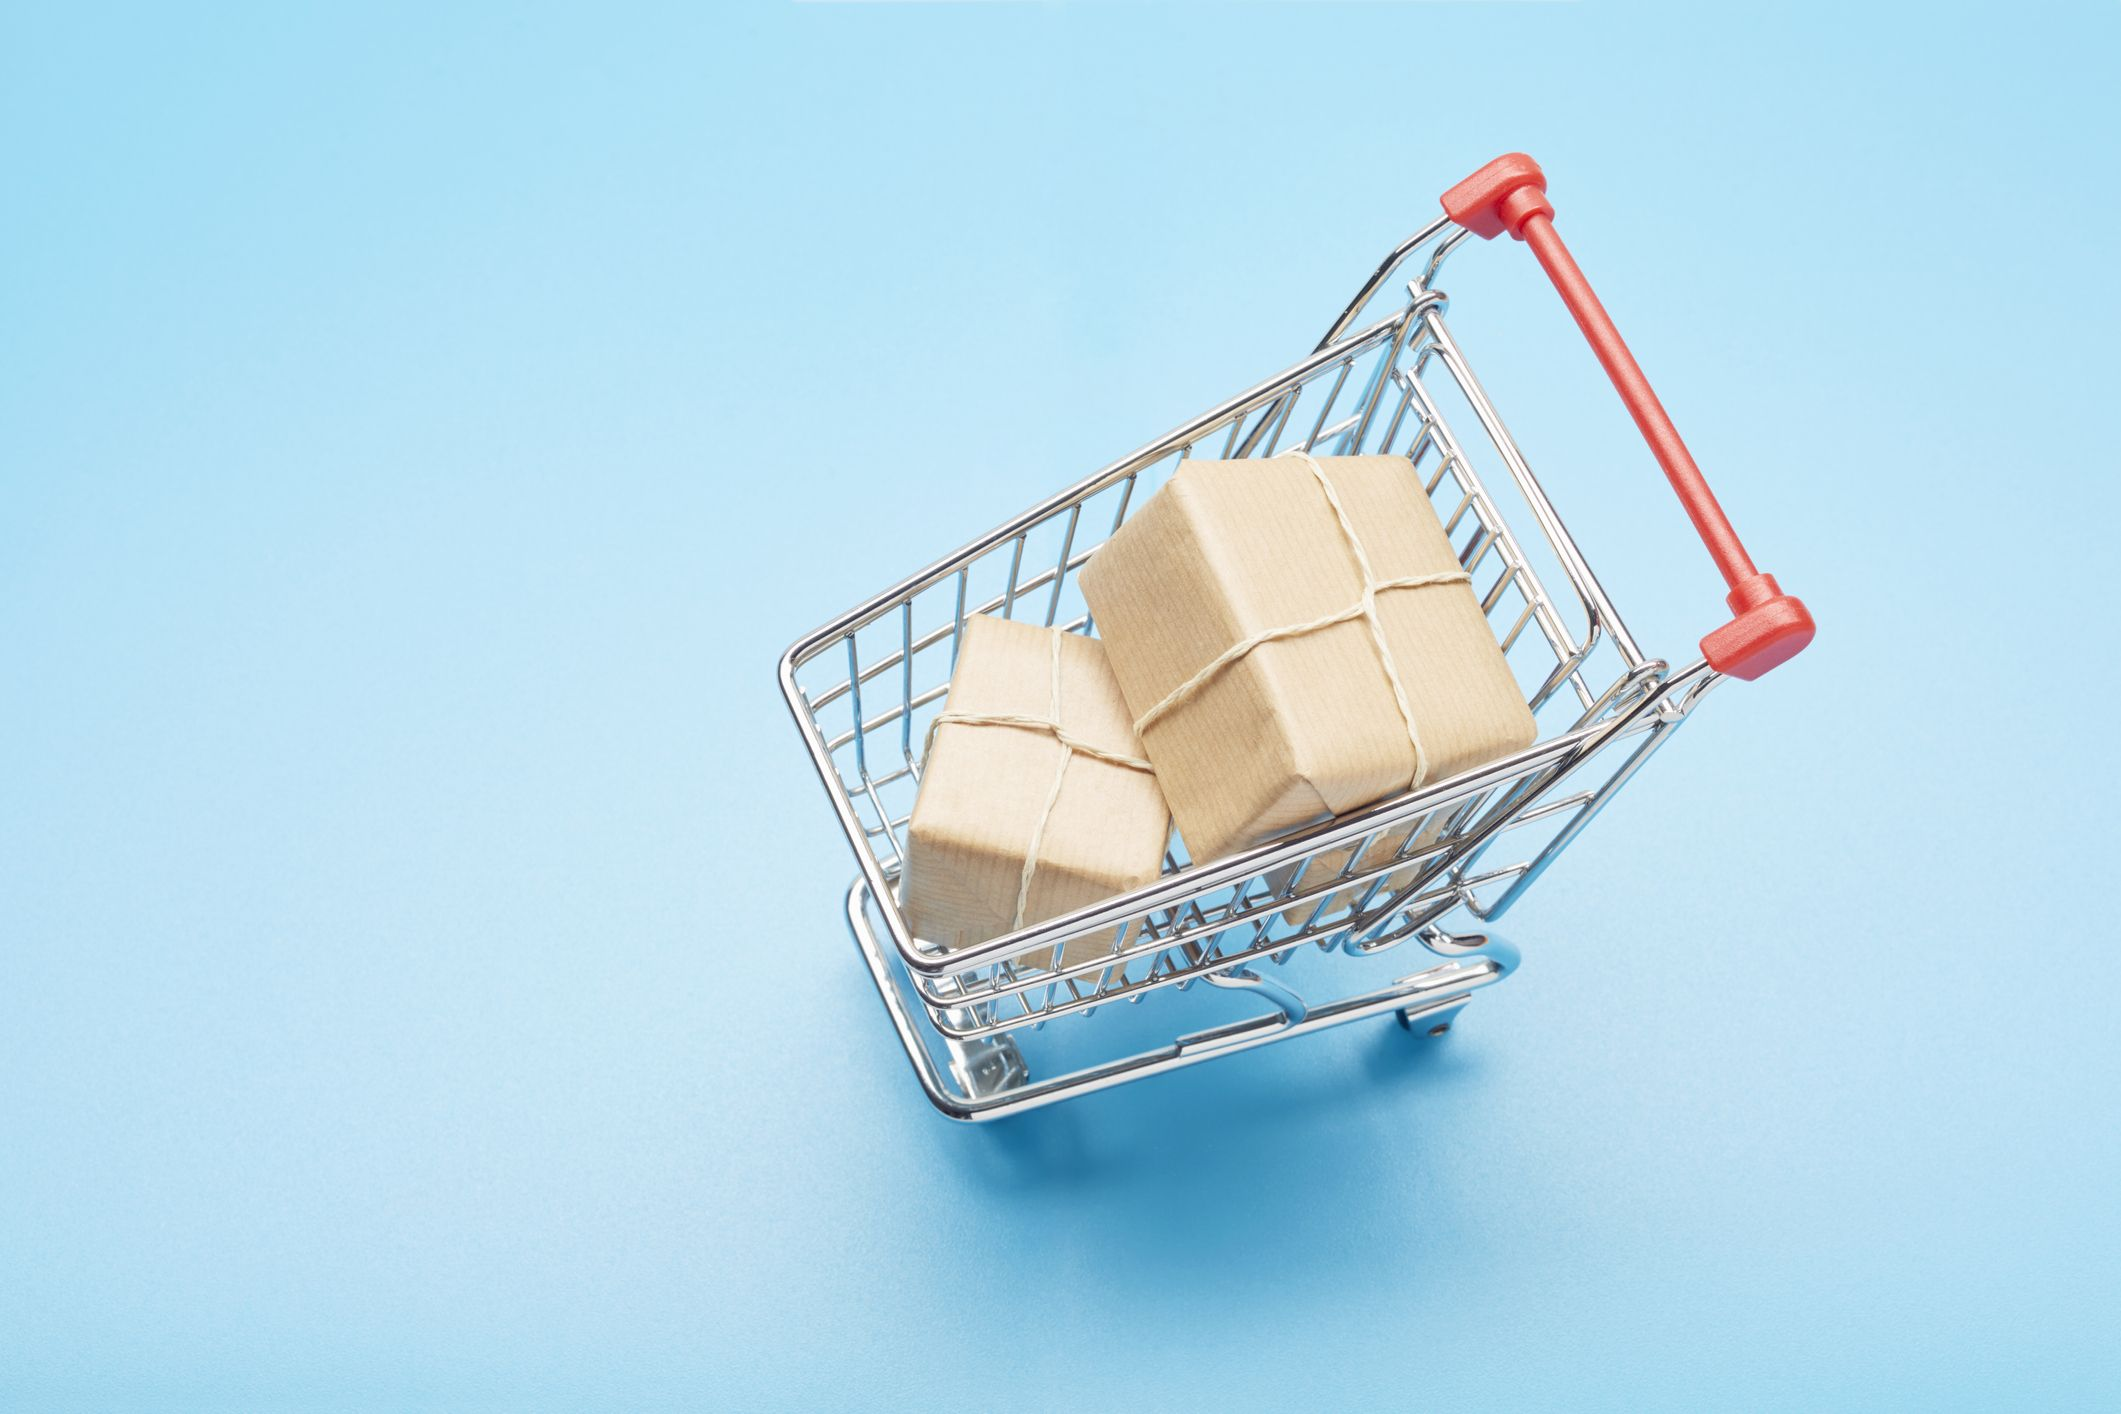 Online shopping addiction should be recognised as a mental health condition, say experts